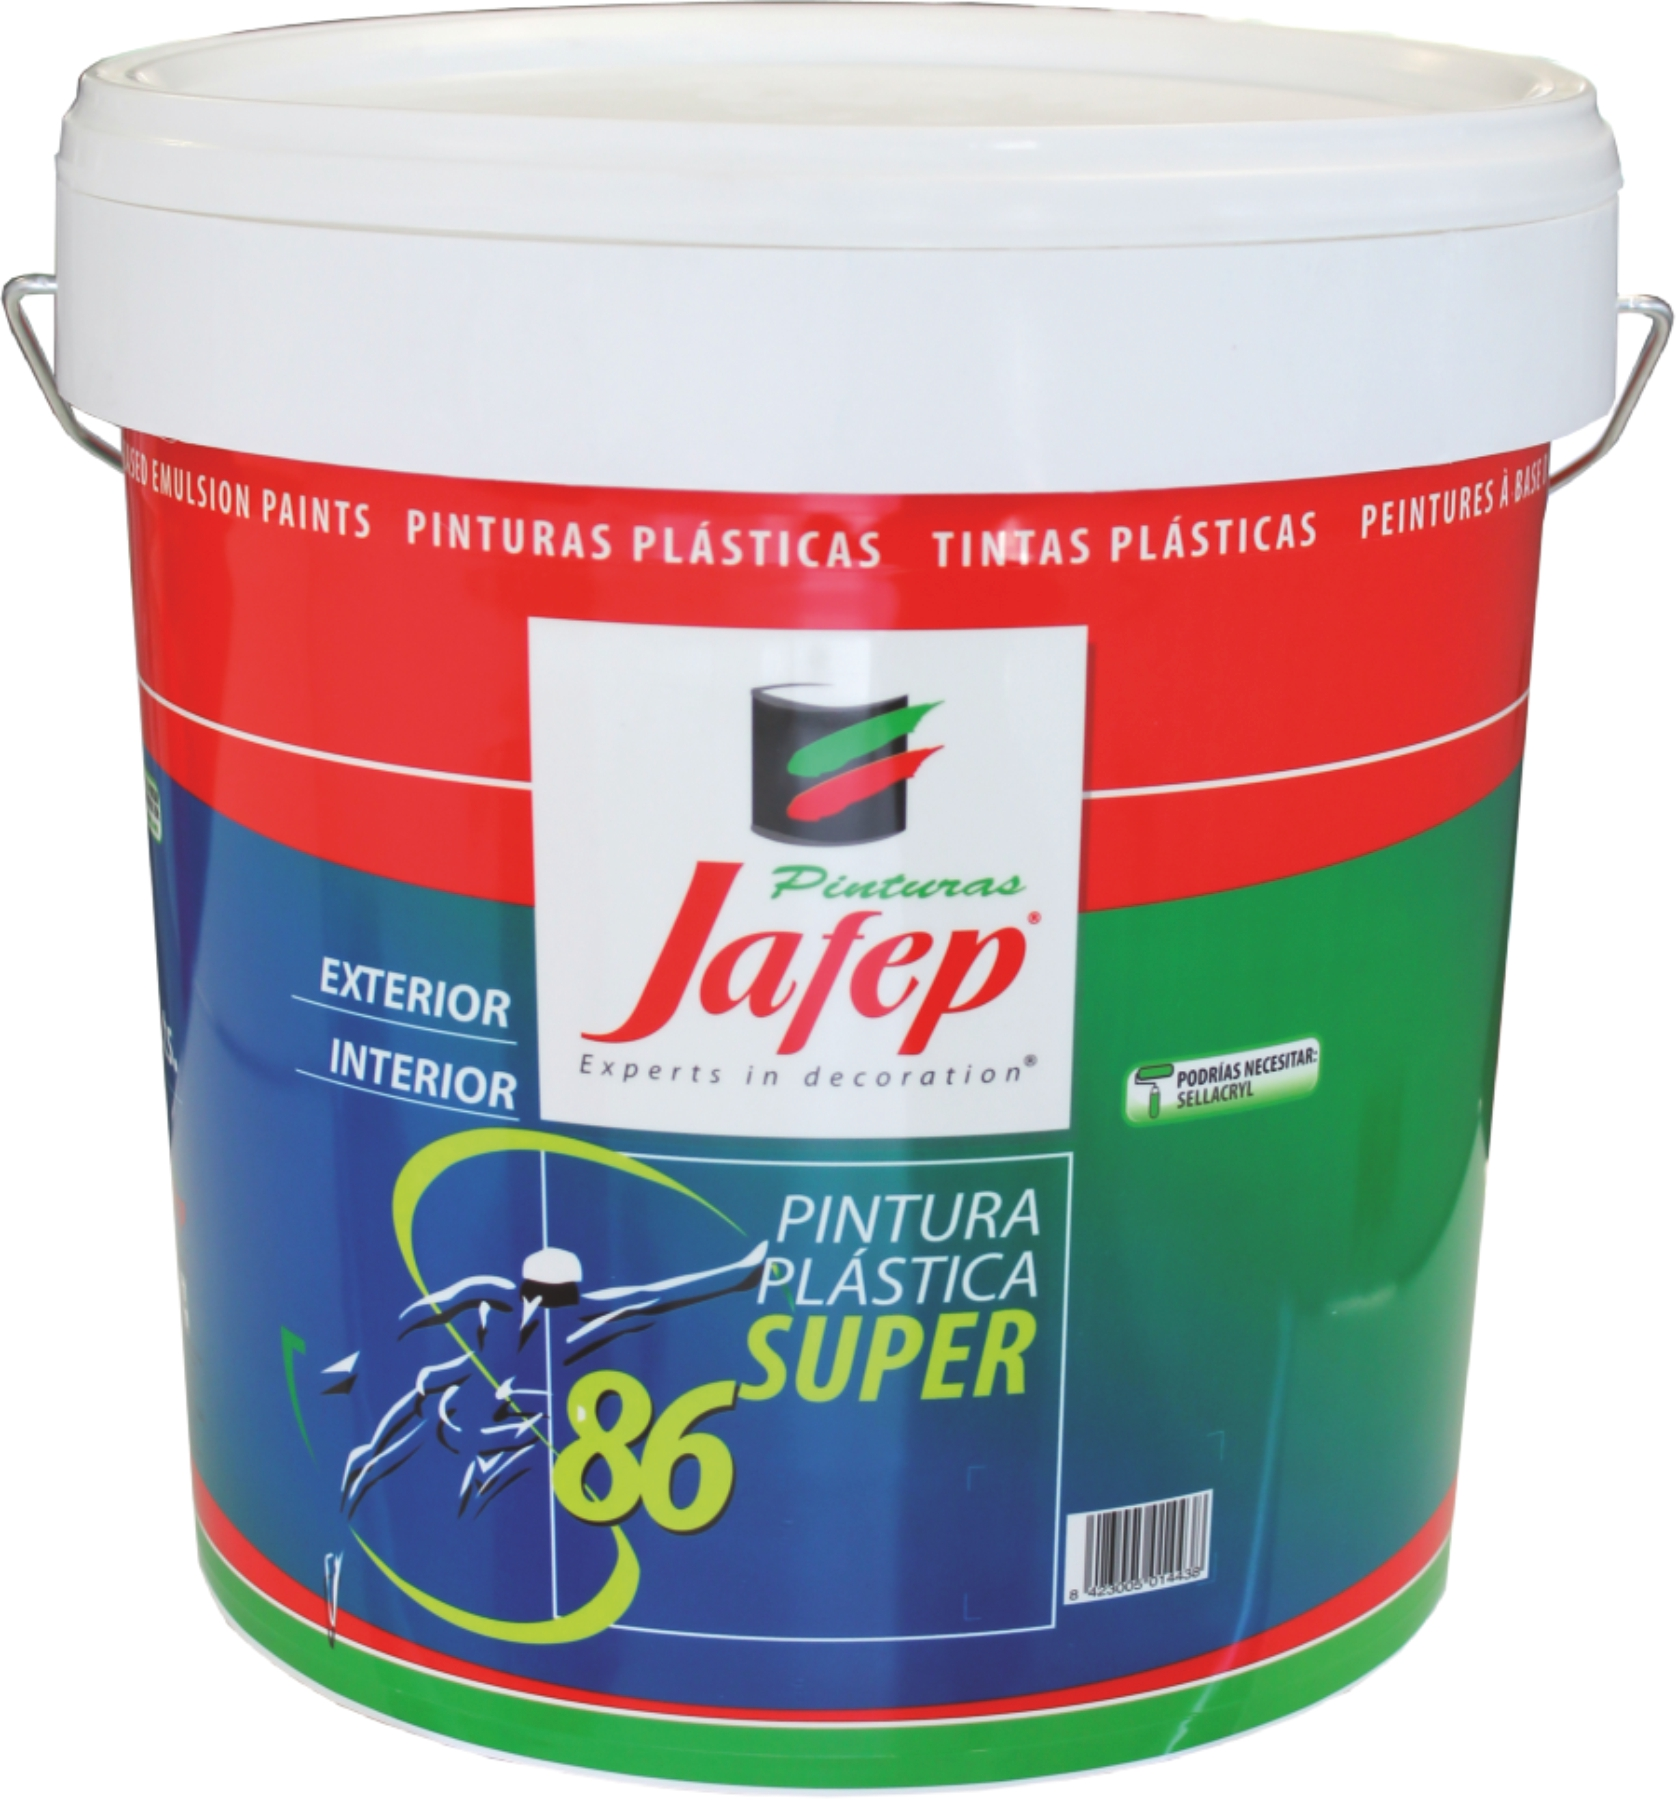 Super 86 vinylique peintures jafep for Pintura para interiores 2016